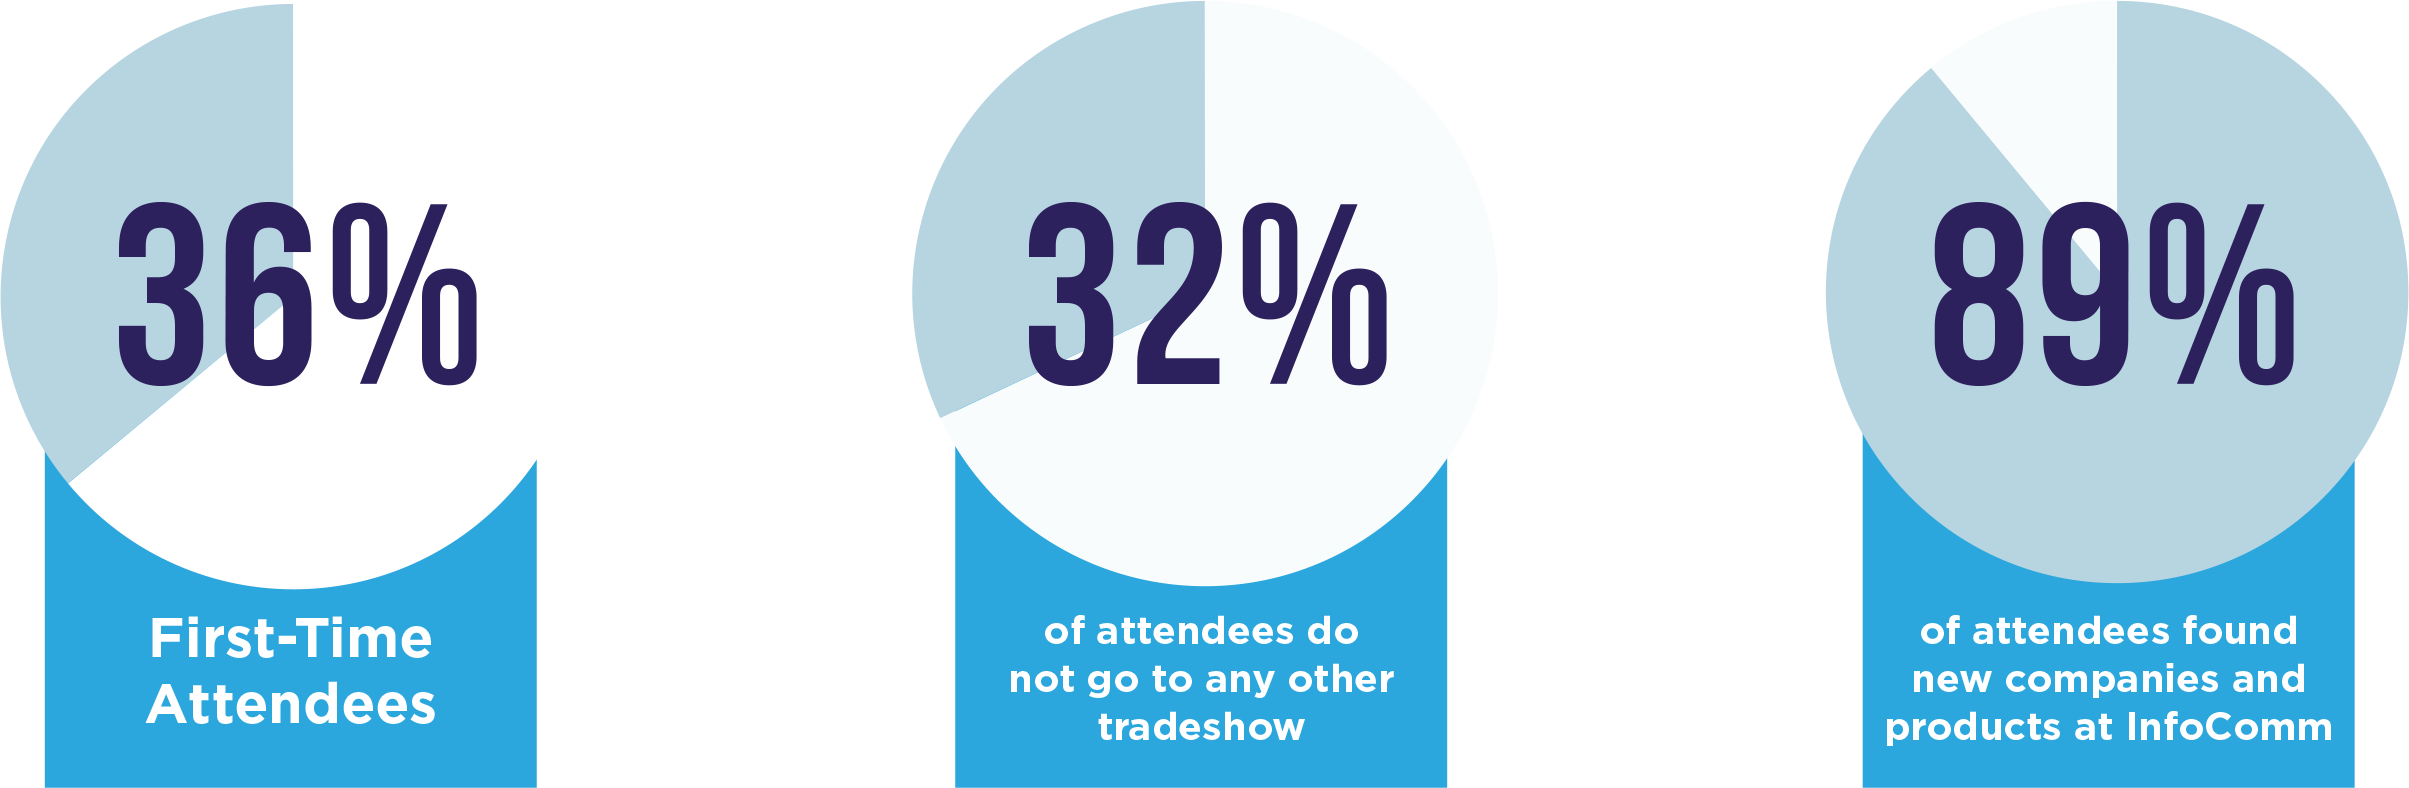 Attendee Percentages